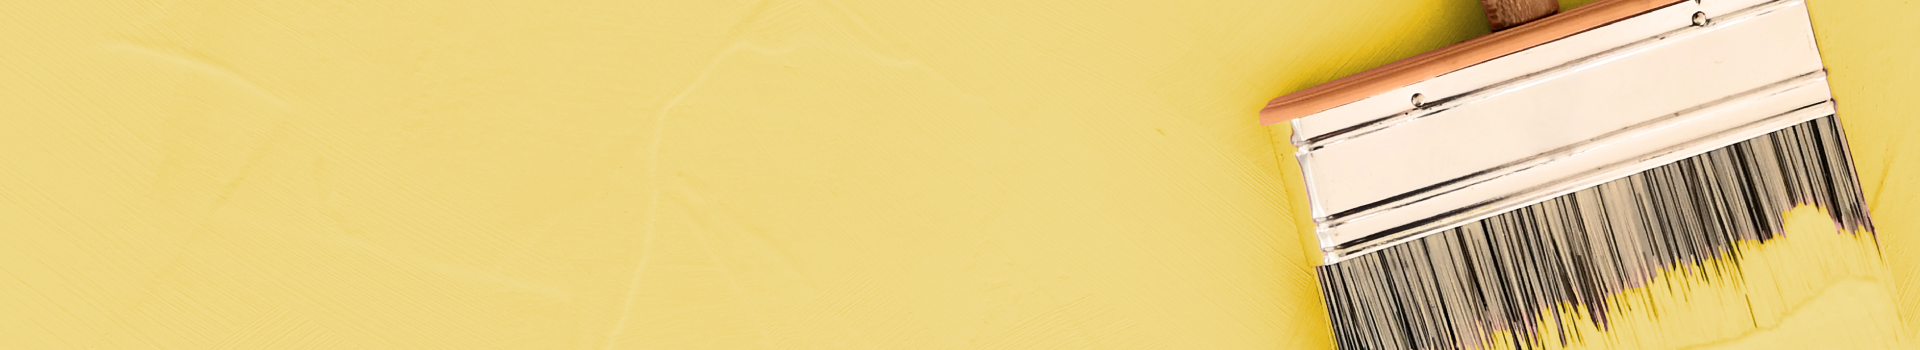 new-header-universal-paints-yellow-products